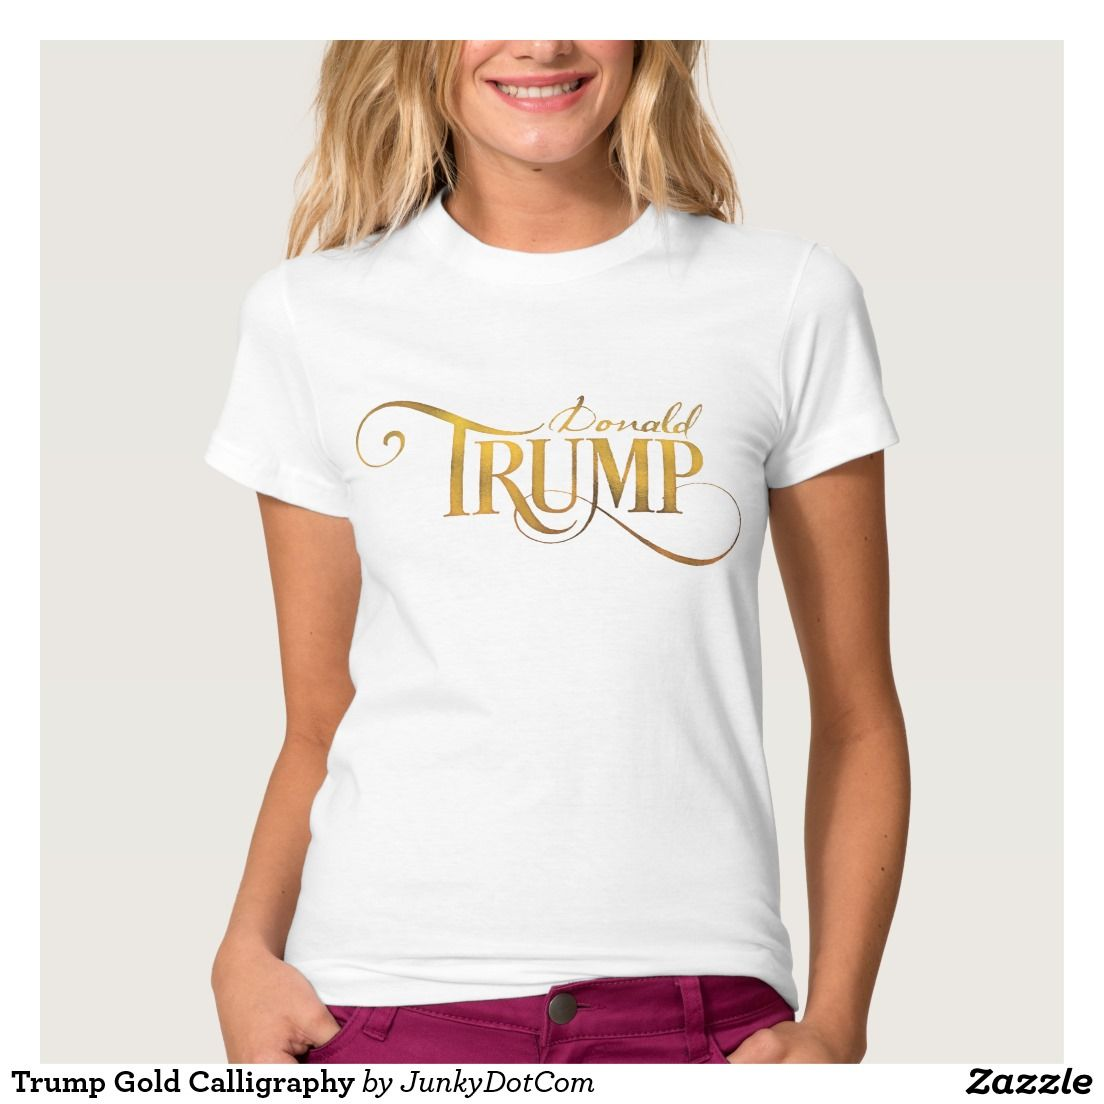 Design your own t shirt zazzle - Trump Gold Calligraphy T Shirt